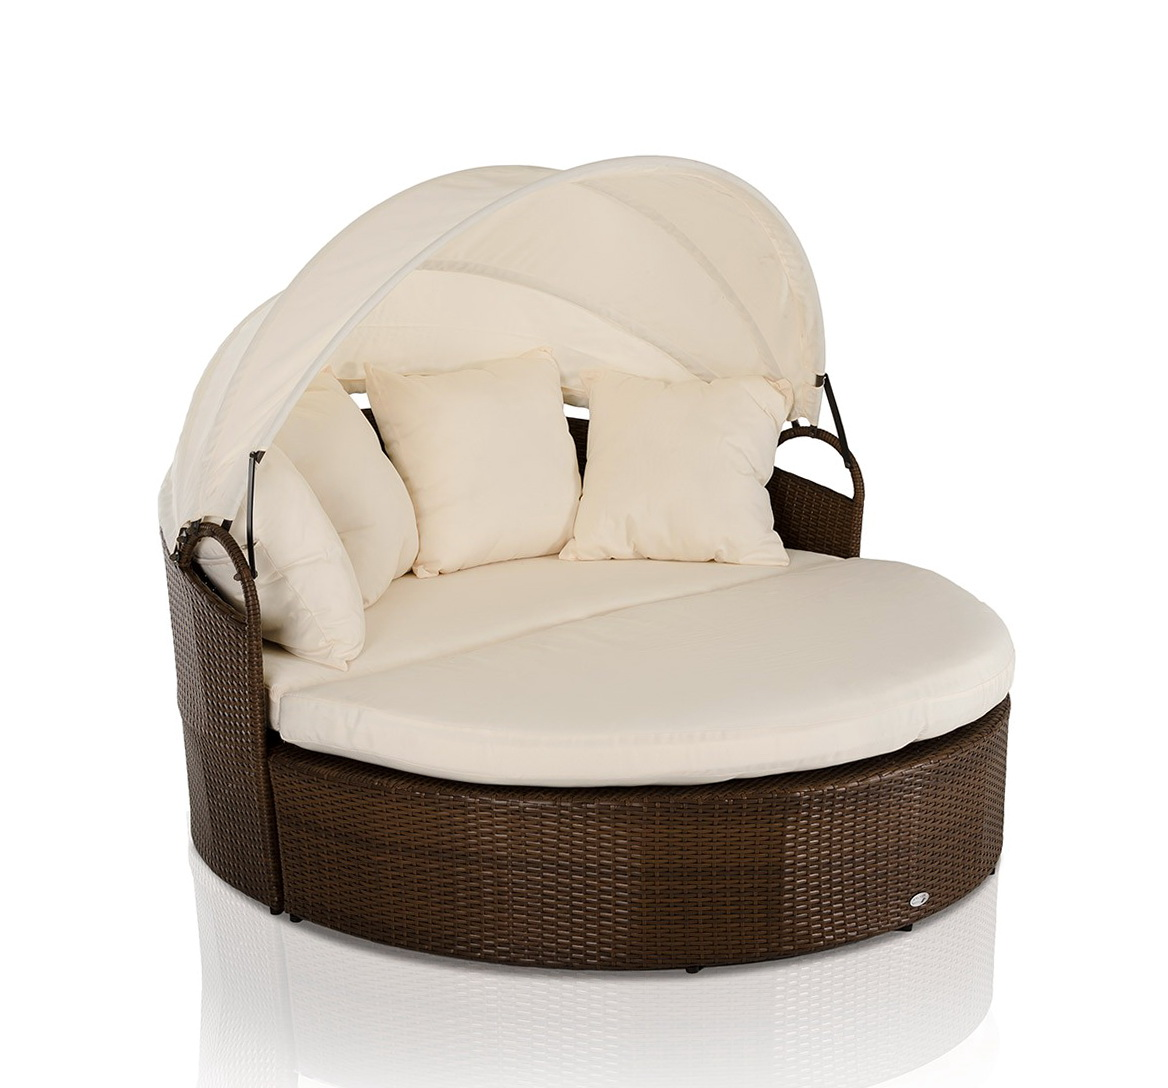 Round Futon Chair Cushion